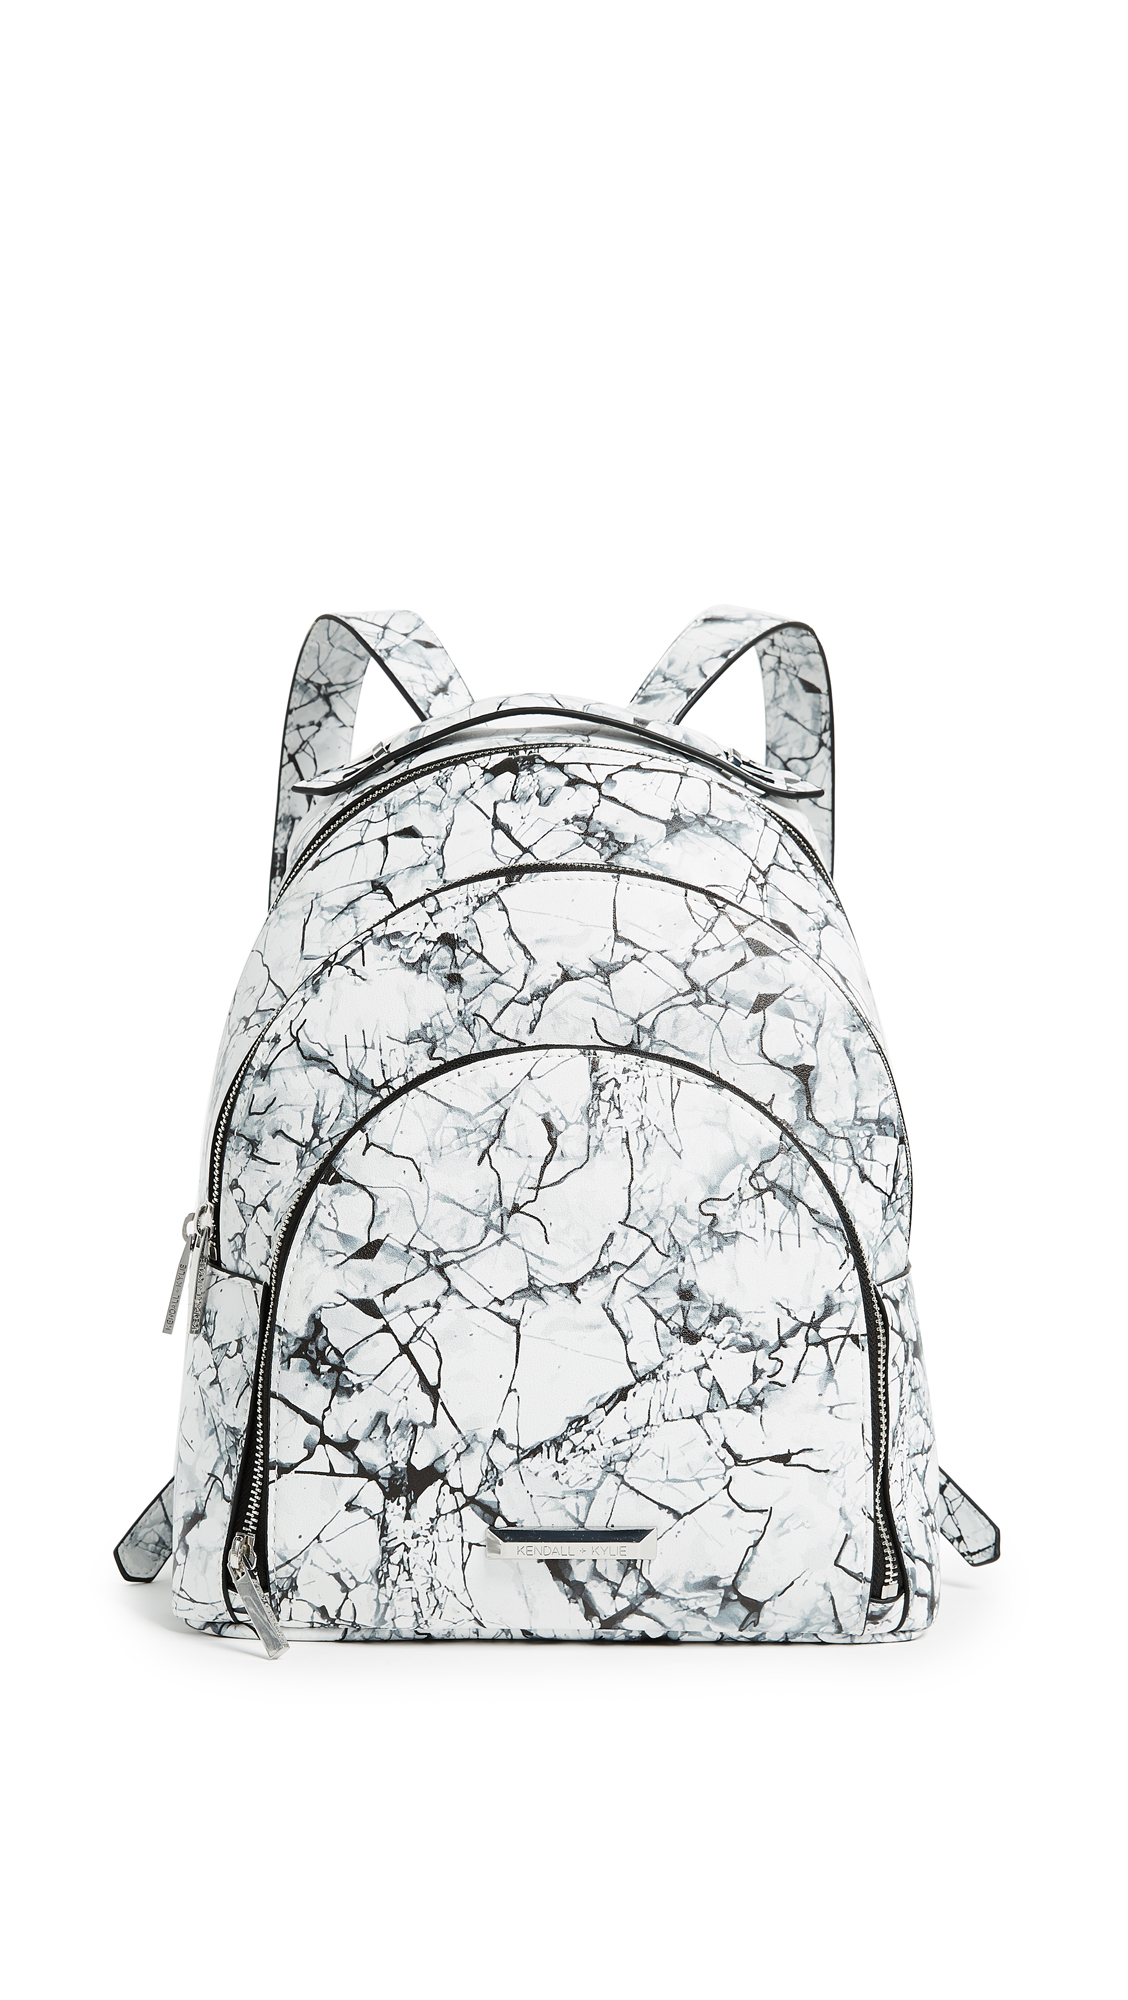 KENDALL + KYLIE Sloane Marble Backpack - White Marble